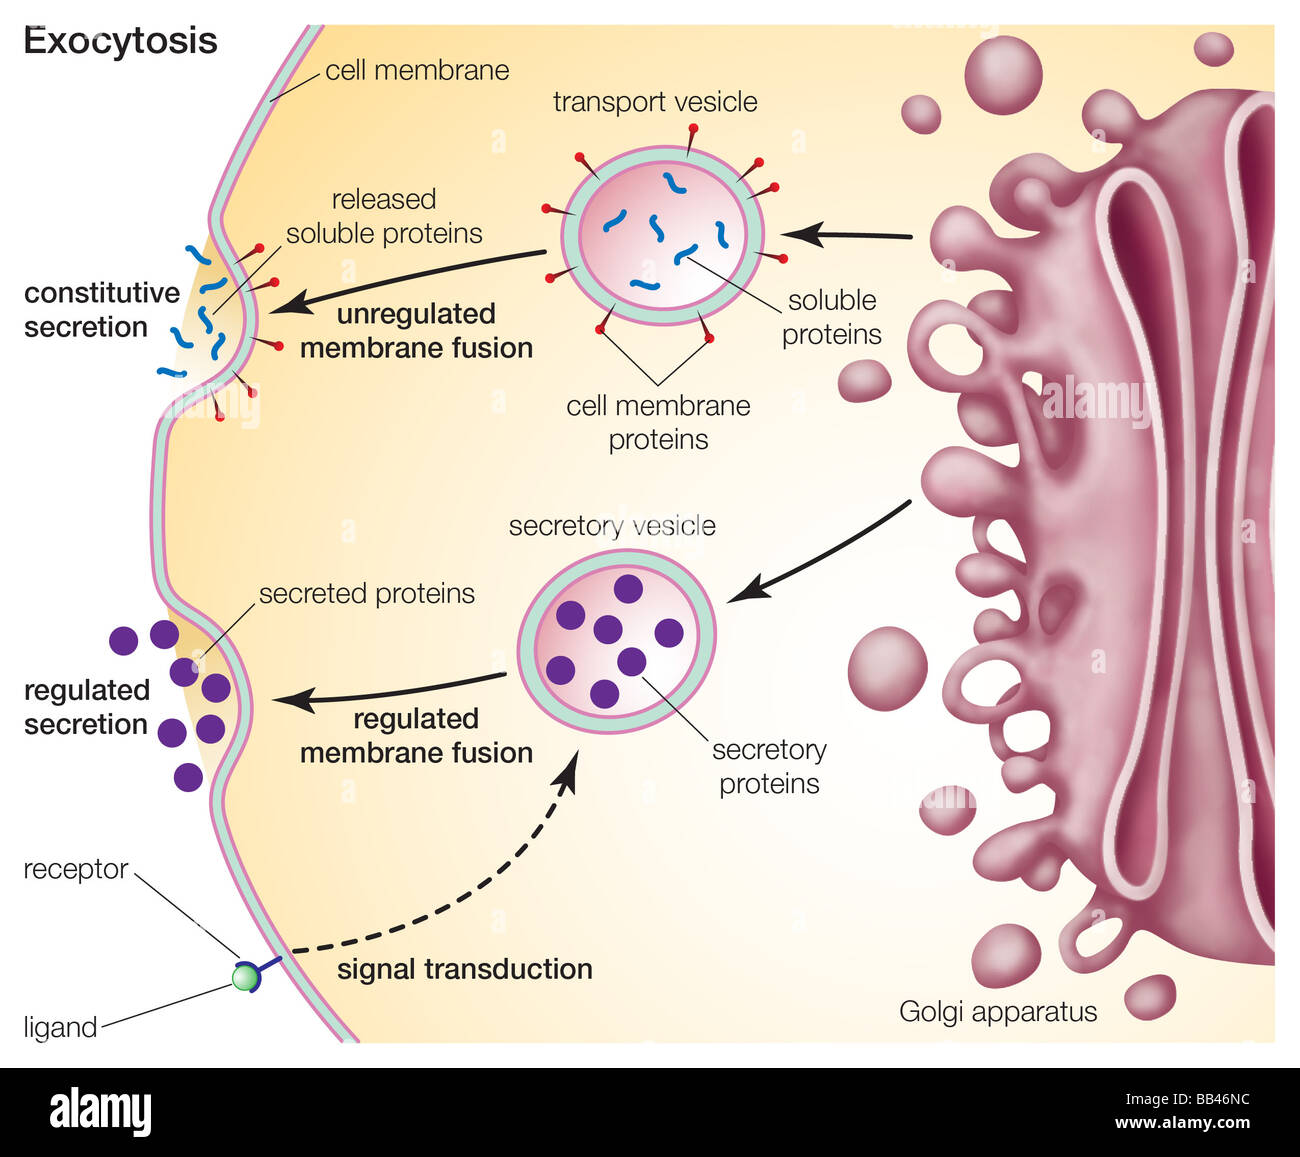 Exocytosis a process for primary active transport across the cell exocytosis a process for primary active transport across the cell membrane pooptronica